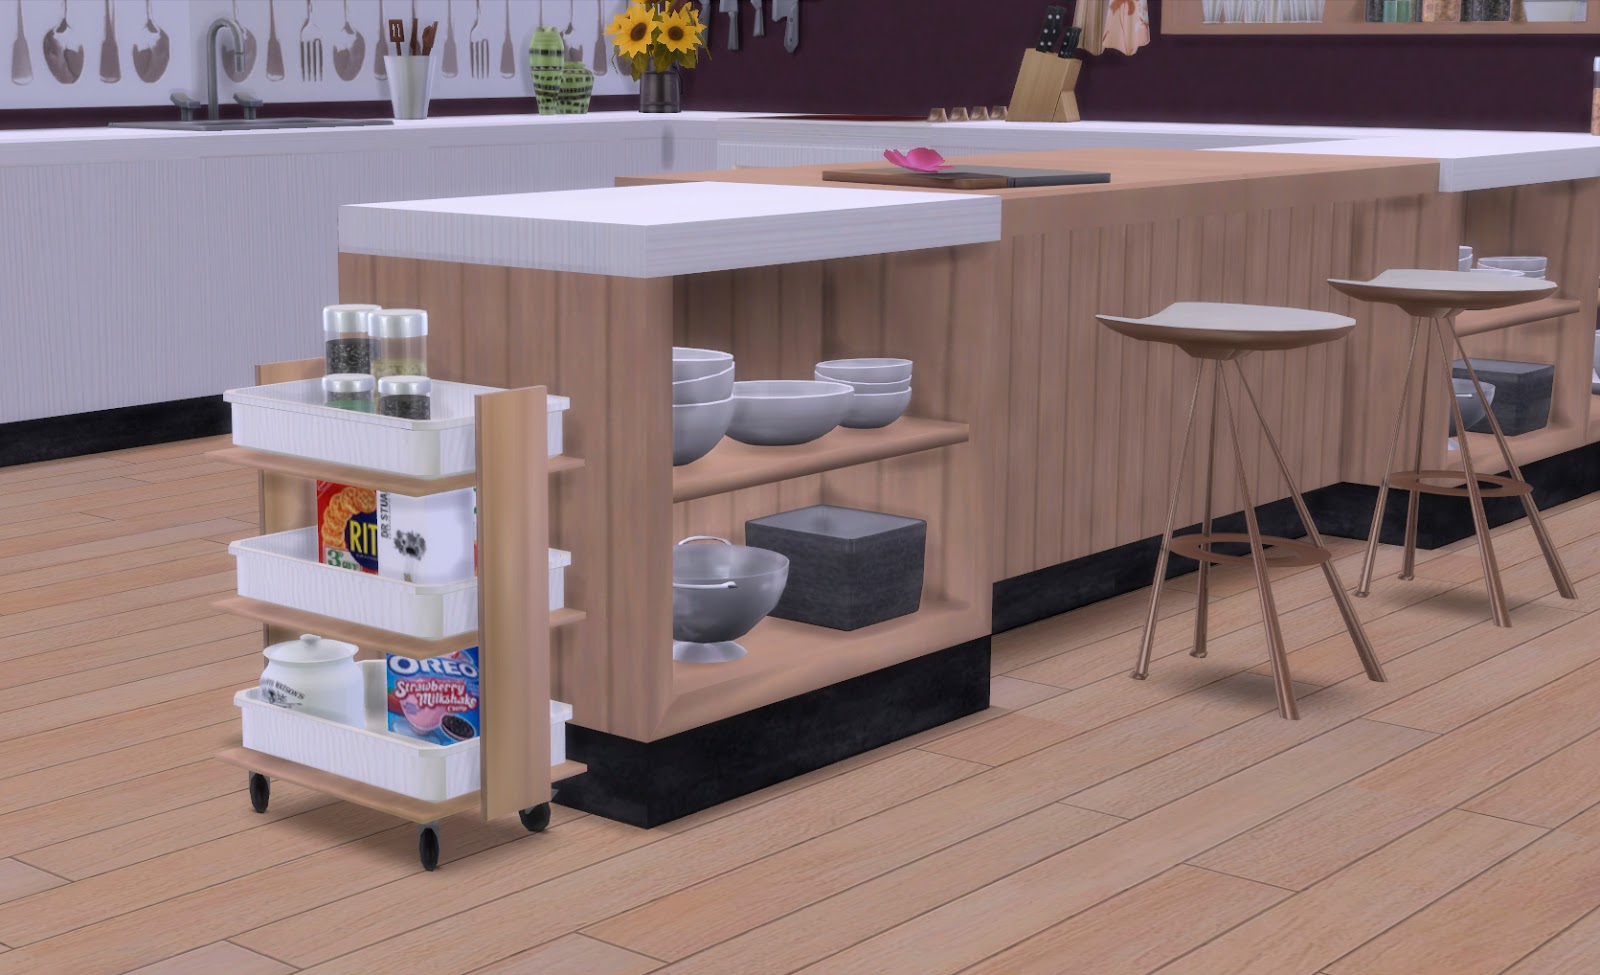 My sims 4 blog firence kitchen set by pqsim4 for Kitchen set sims 4